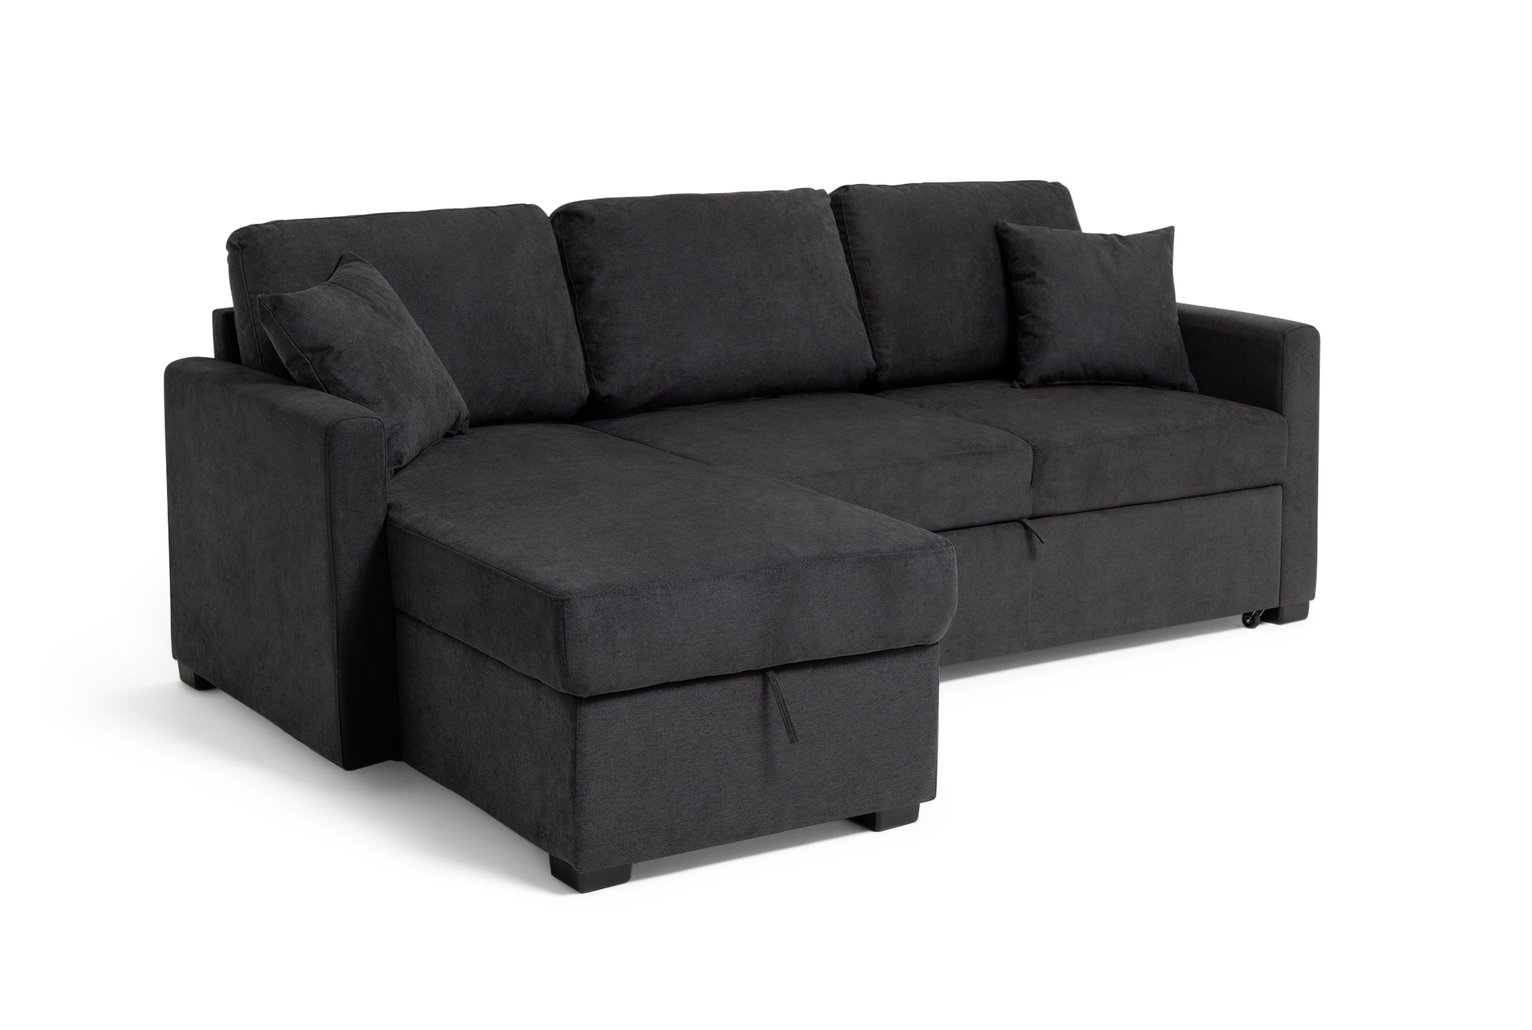 home reagan fabric left corner chaise sofa bed   charcoal sofa beds chair beds and futons   argos   page 3  rh   argos co uk